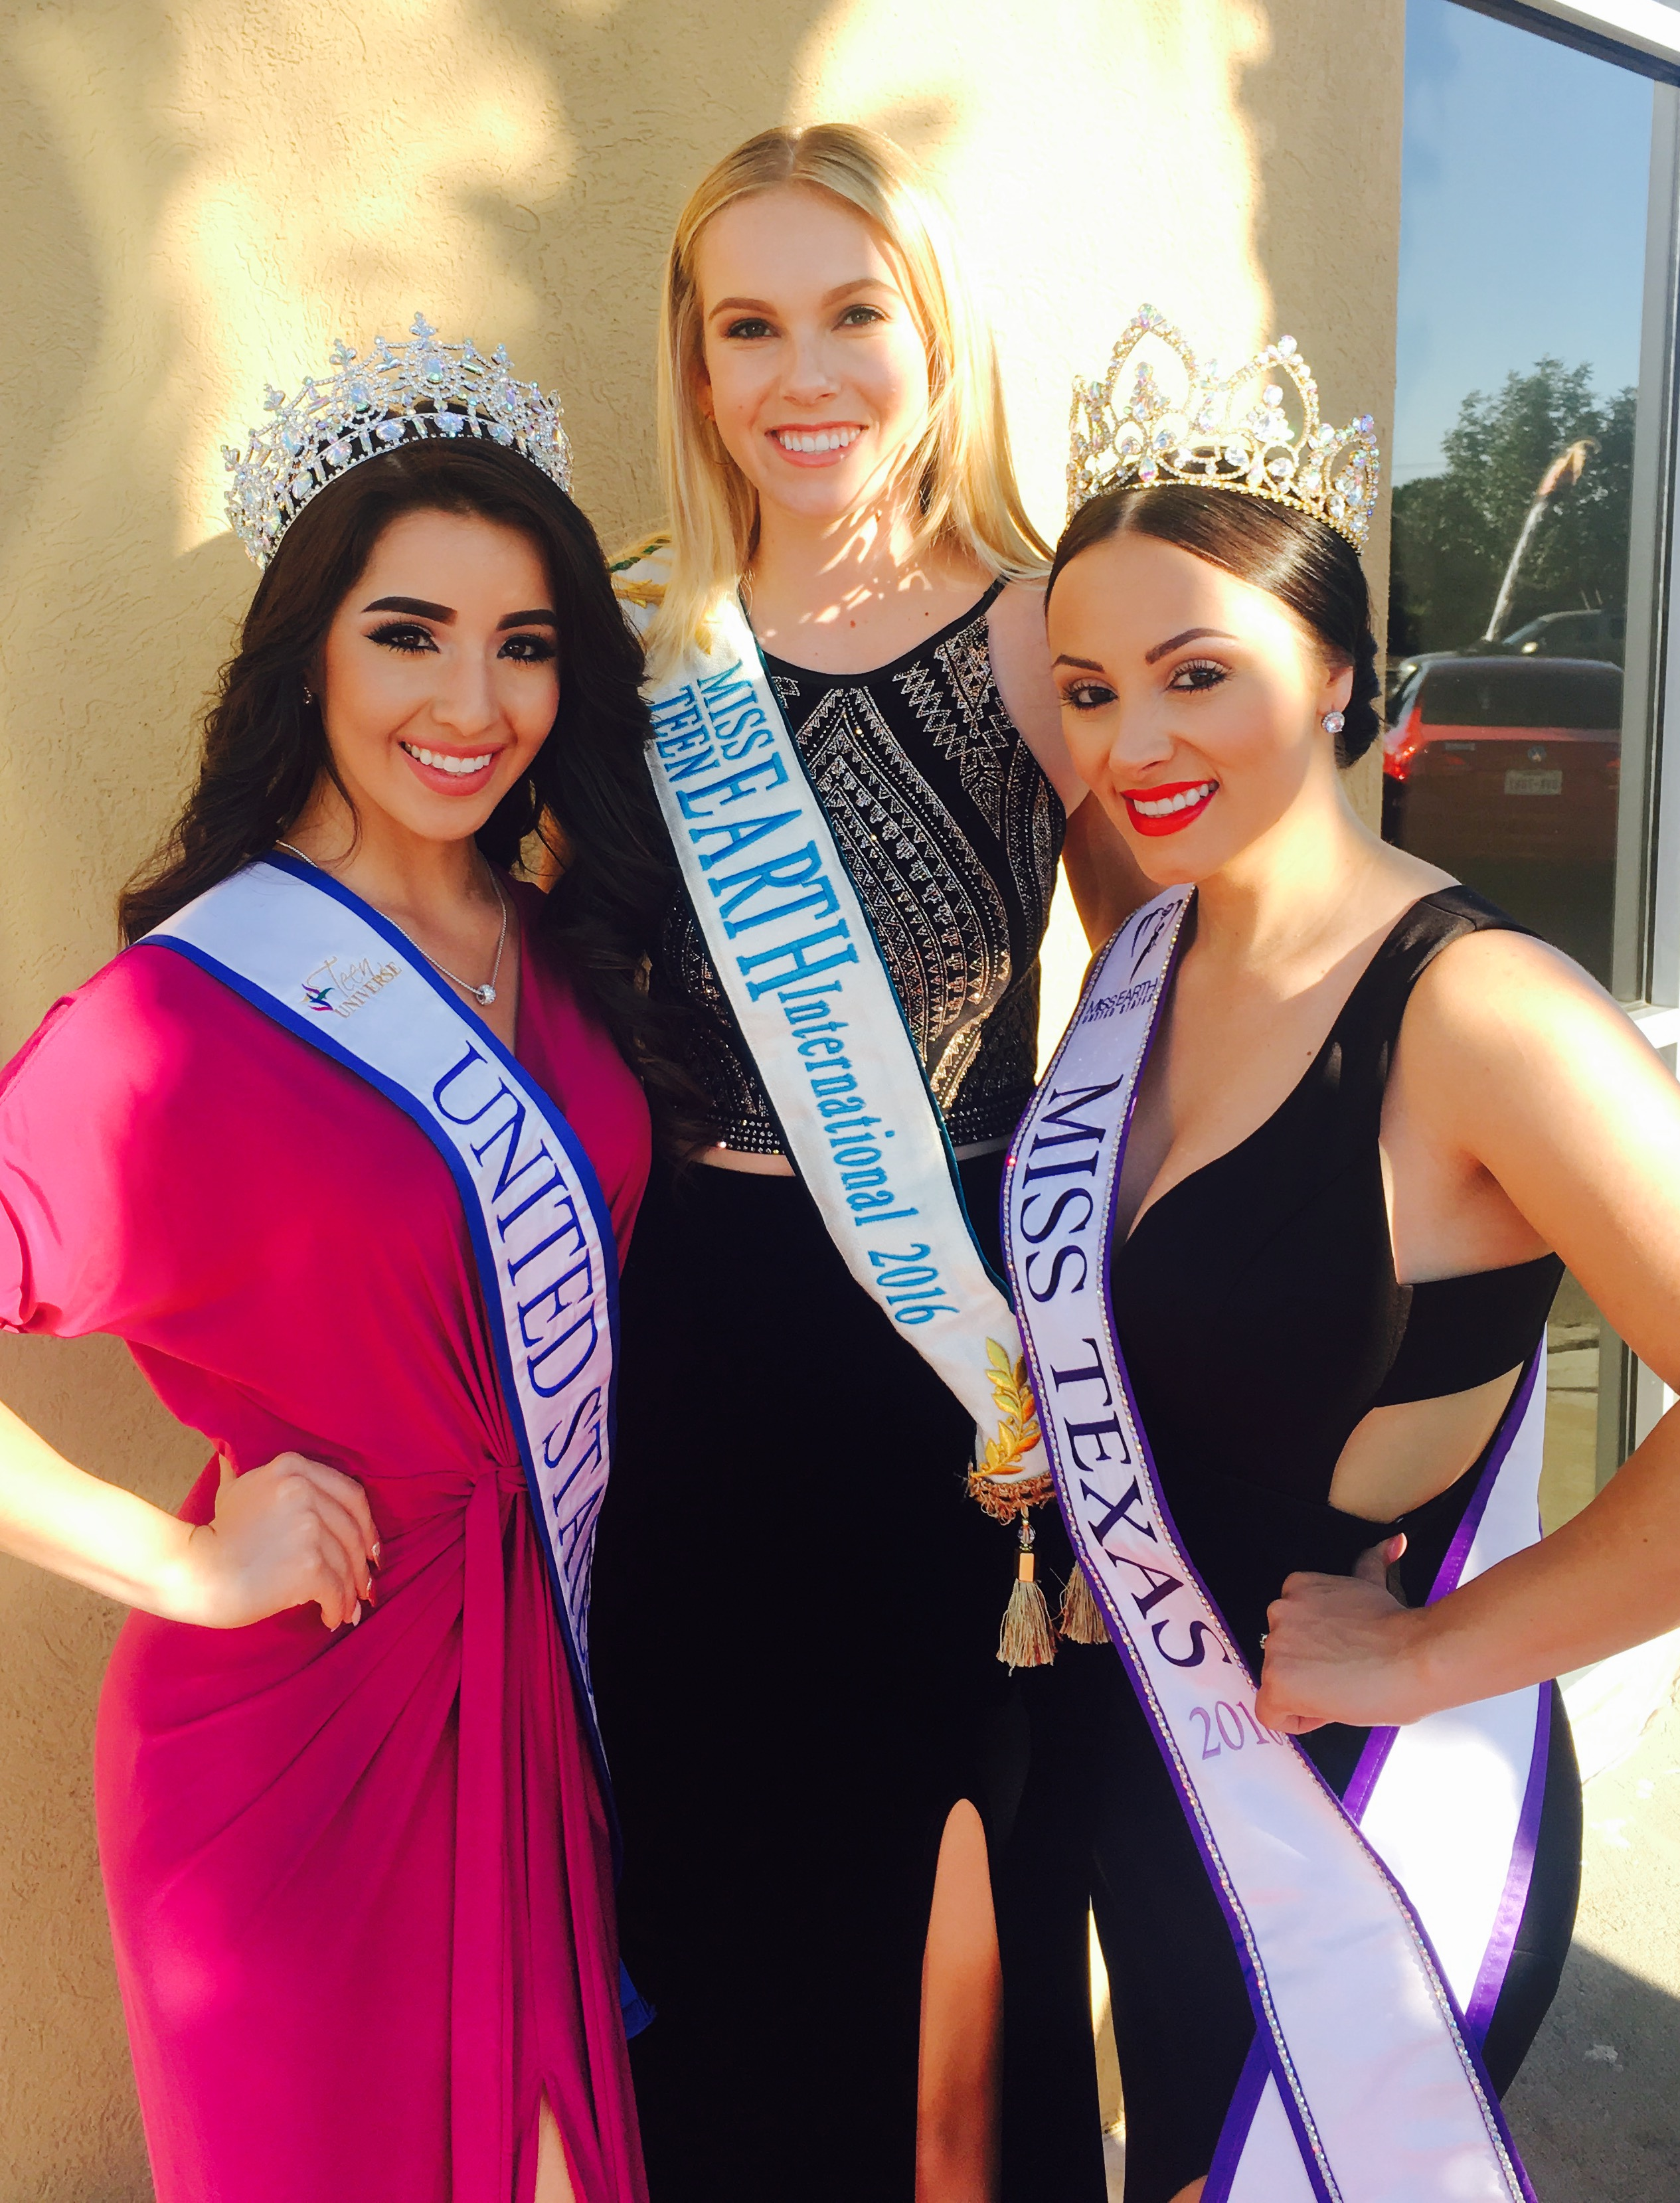 International titleholders including Teen America United States, Miss Teen Earth International 2016 and Miss Texas 2016.